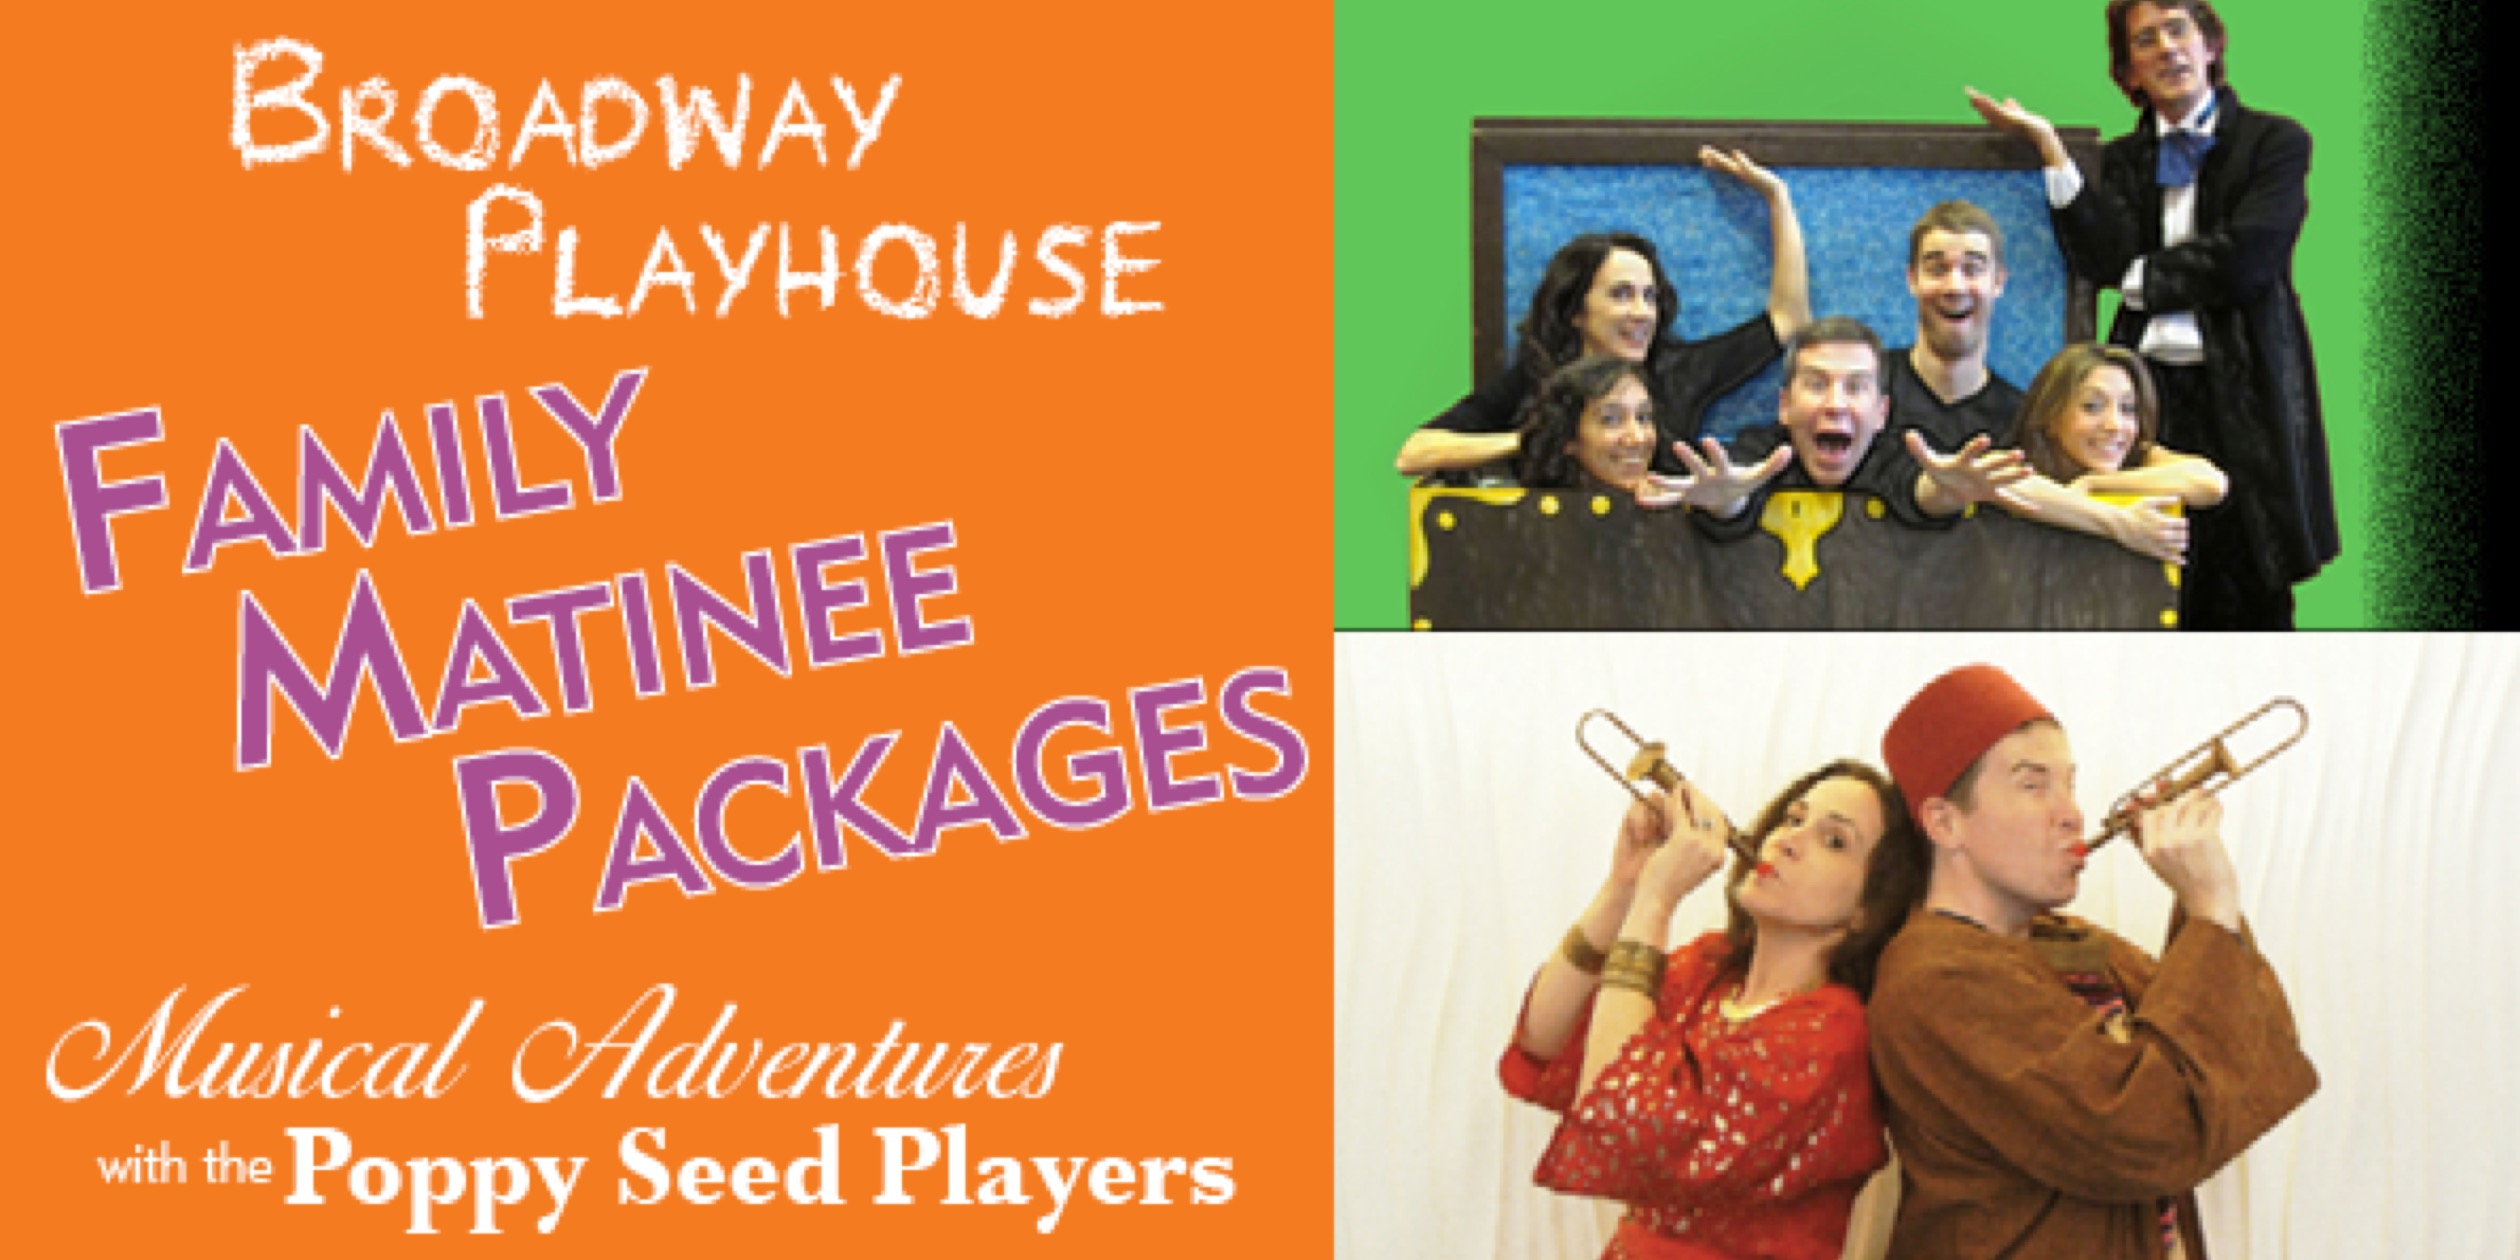 Combine Broadway Playhouse & Poppy Seed Players Performances